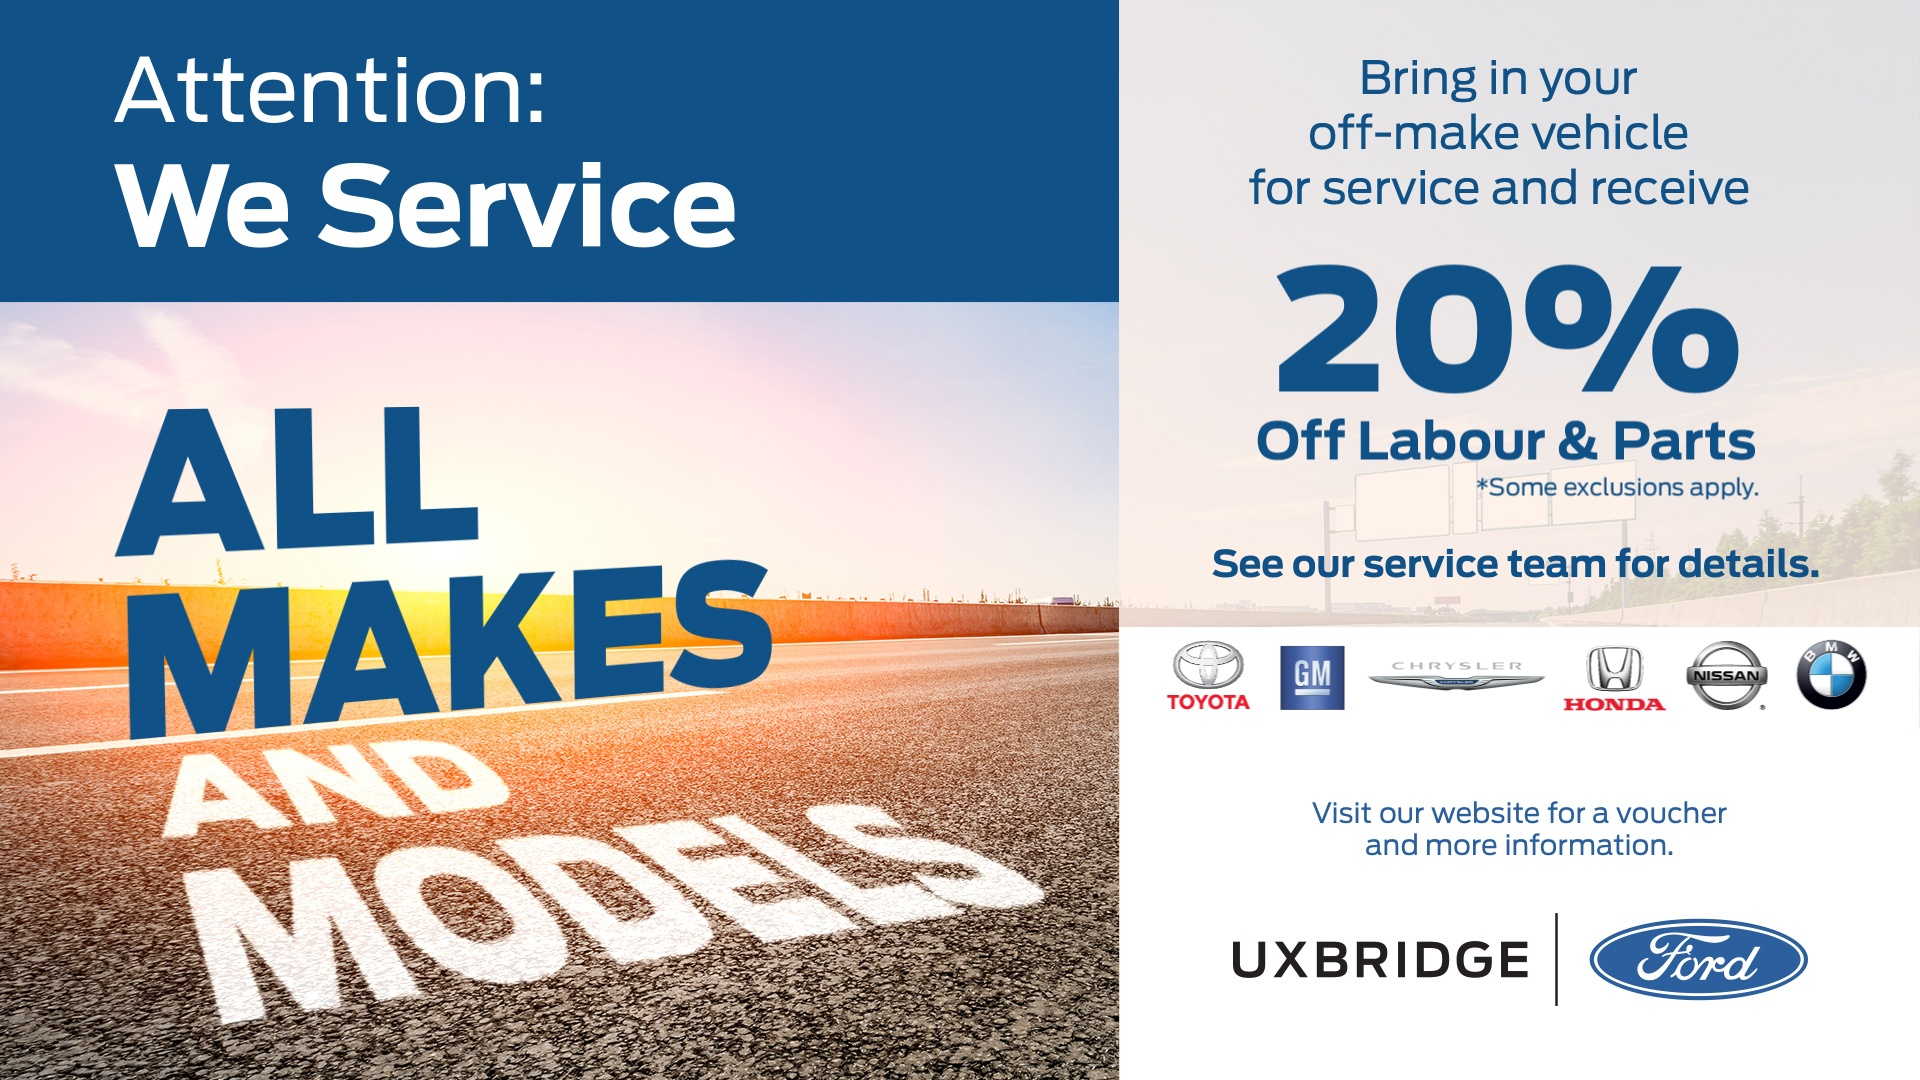 UxbridgeFord-OffMakeSpecial